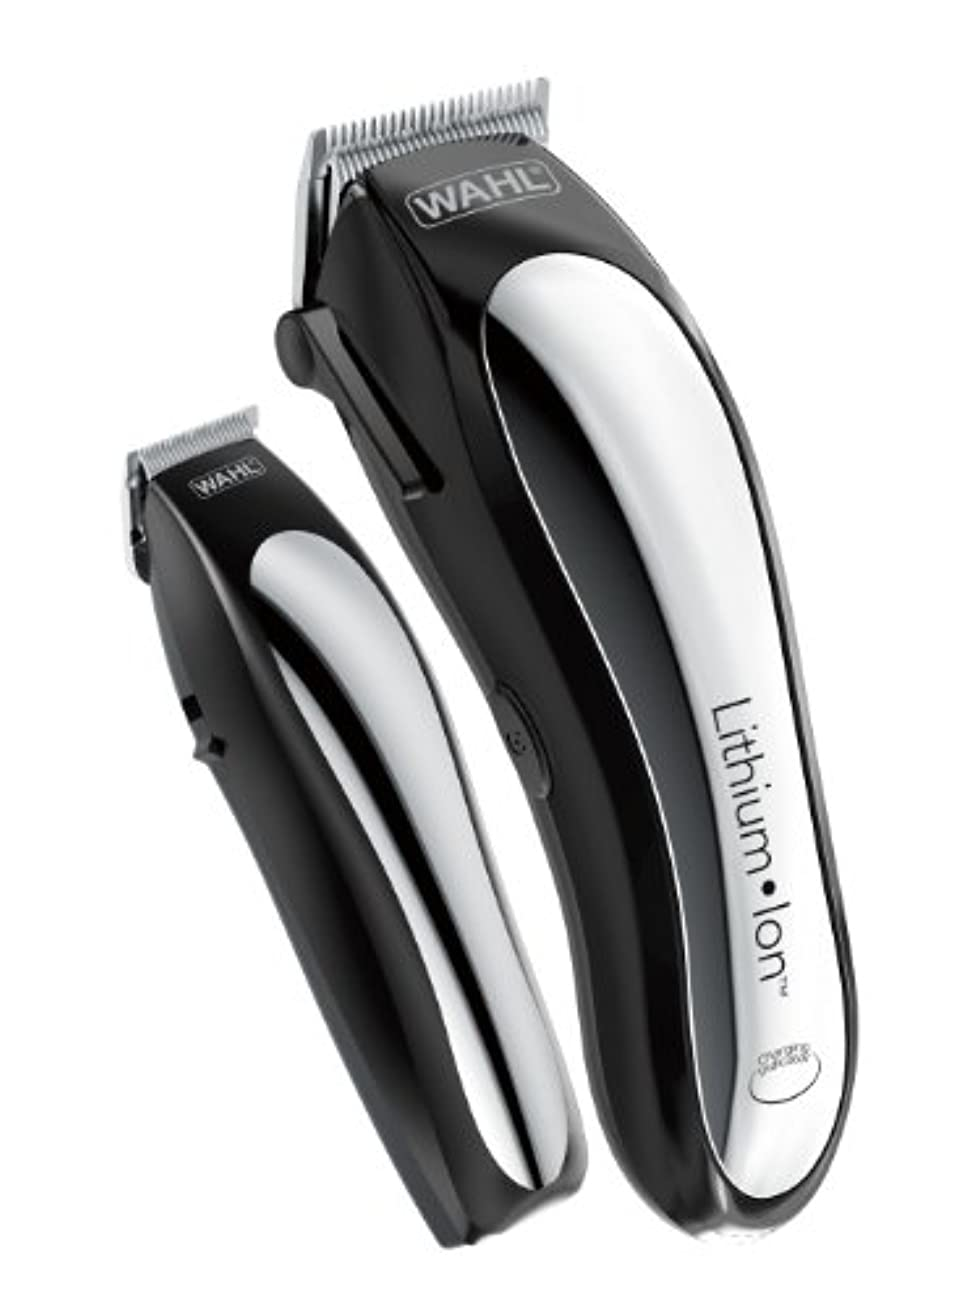 移住するディーラー休眠Wahl Clipper Lithium Ion Cordless Rechargeable Hair Clippers and Trimmers for men,Hair Cutting Kit with 10 Guide Combs... Wahl